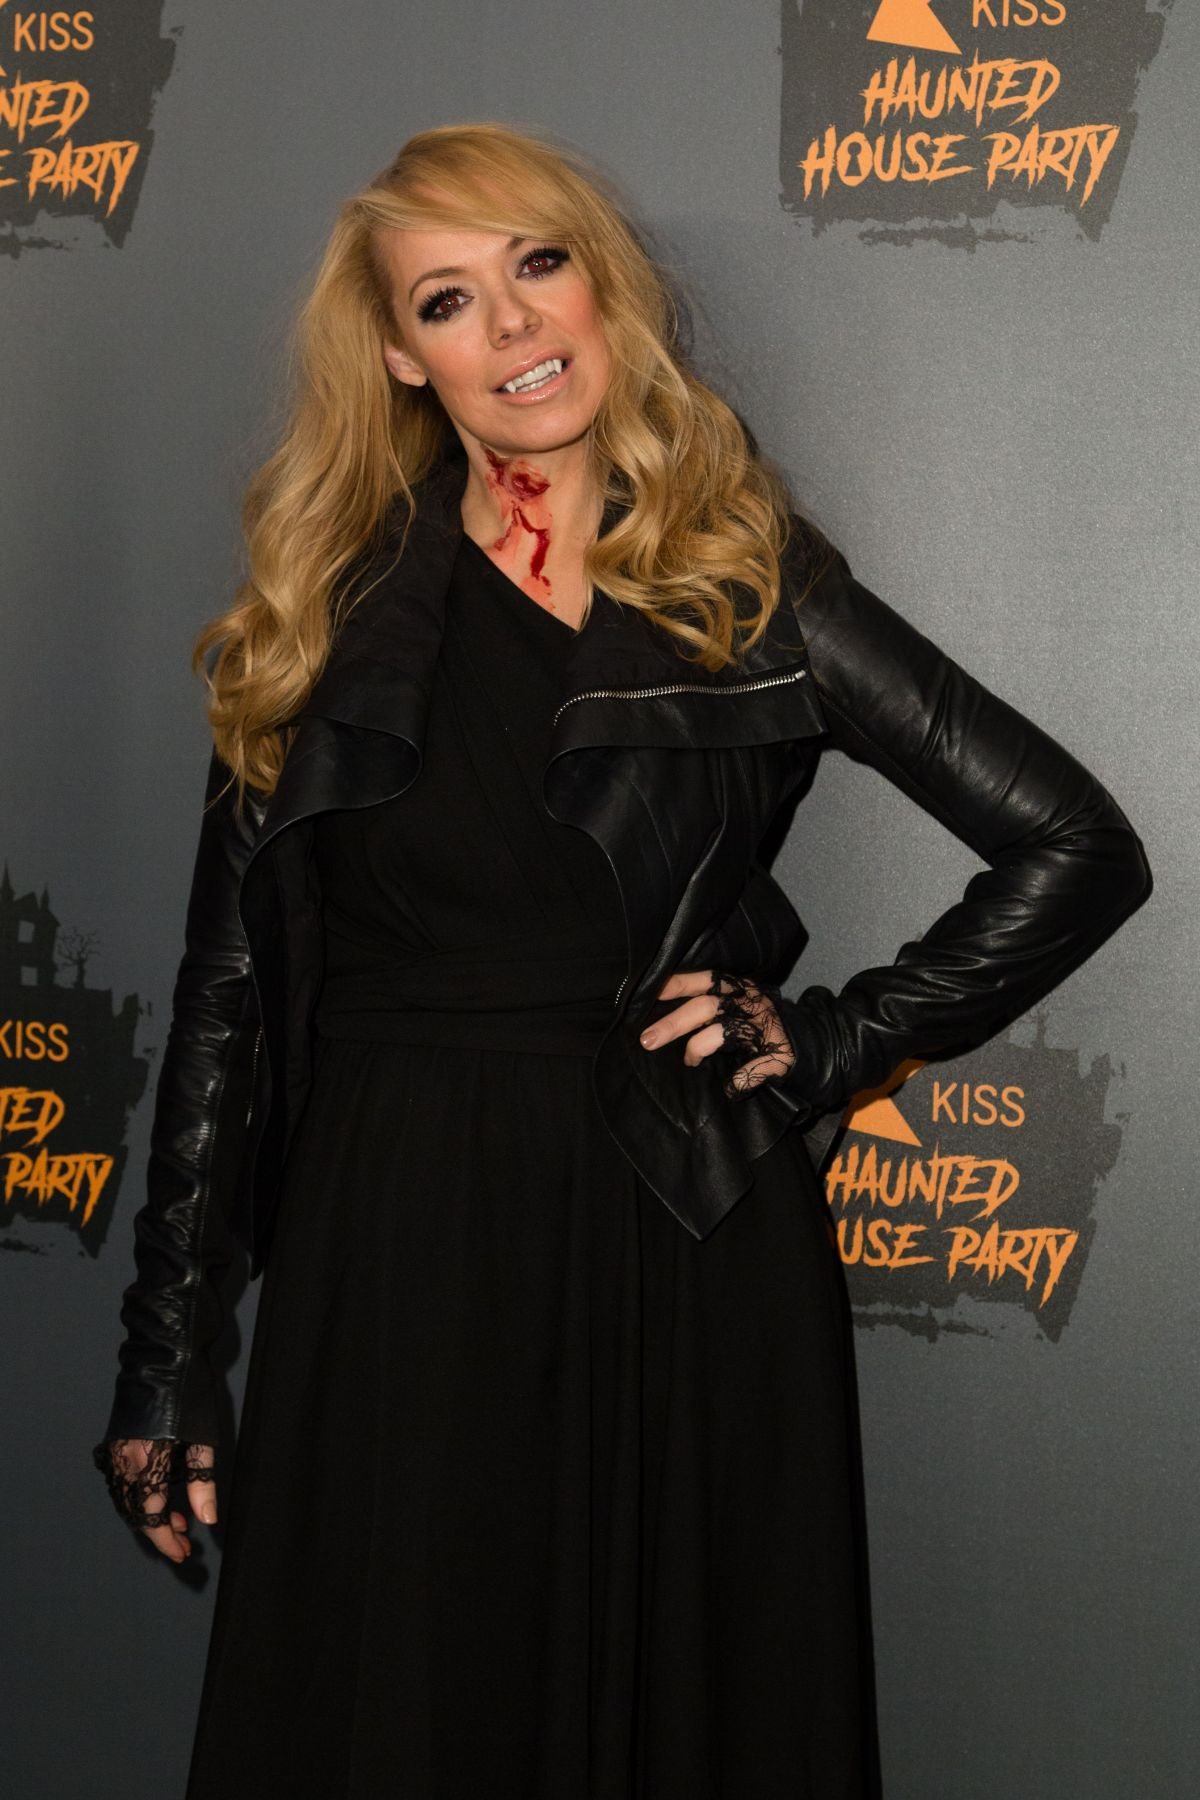 liz mcclarnon at kiss haunted house party in london 10 26 2018